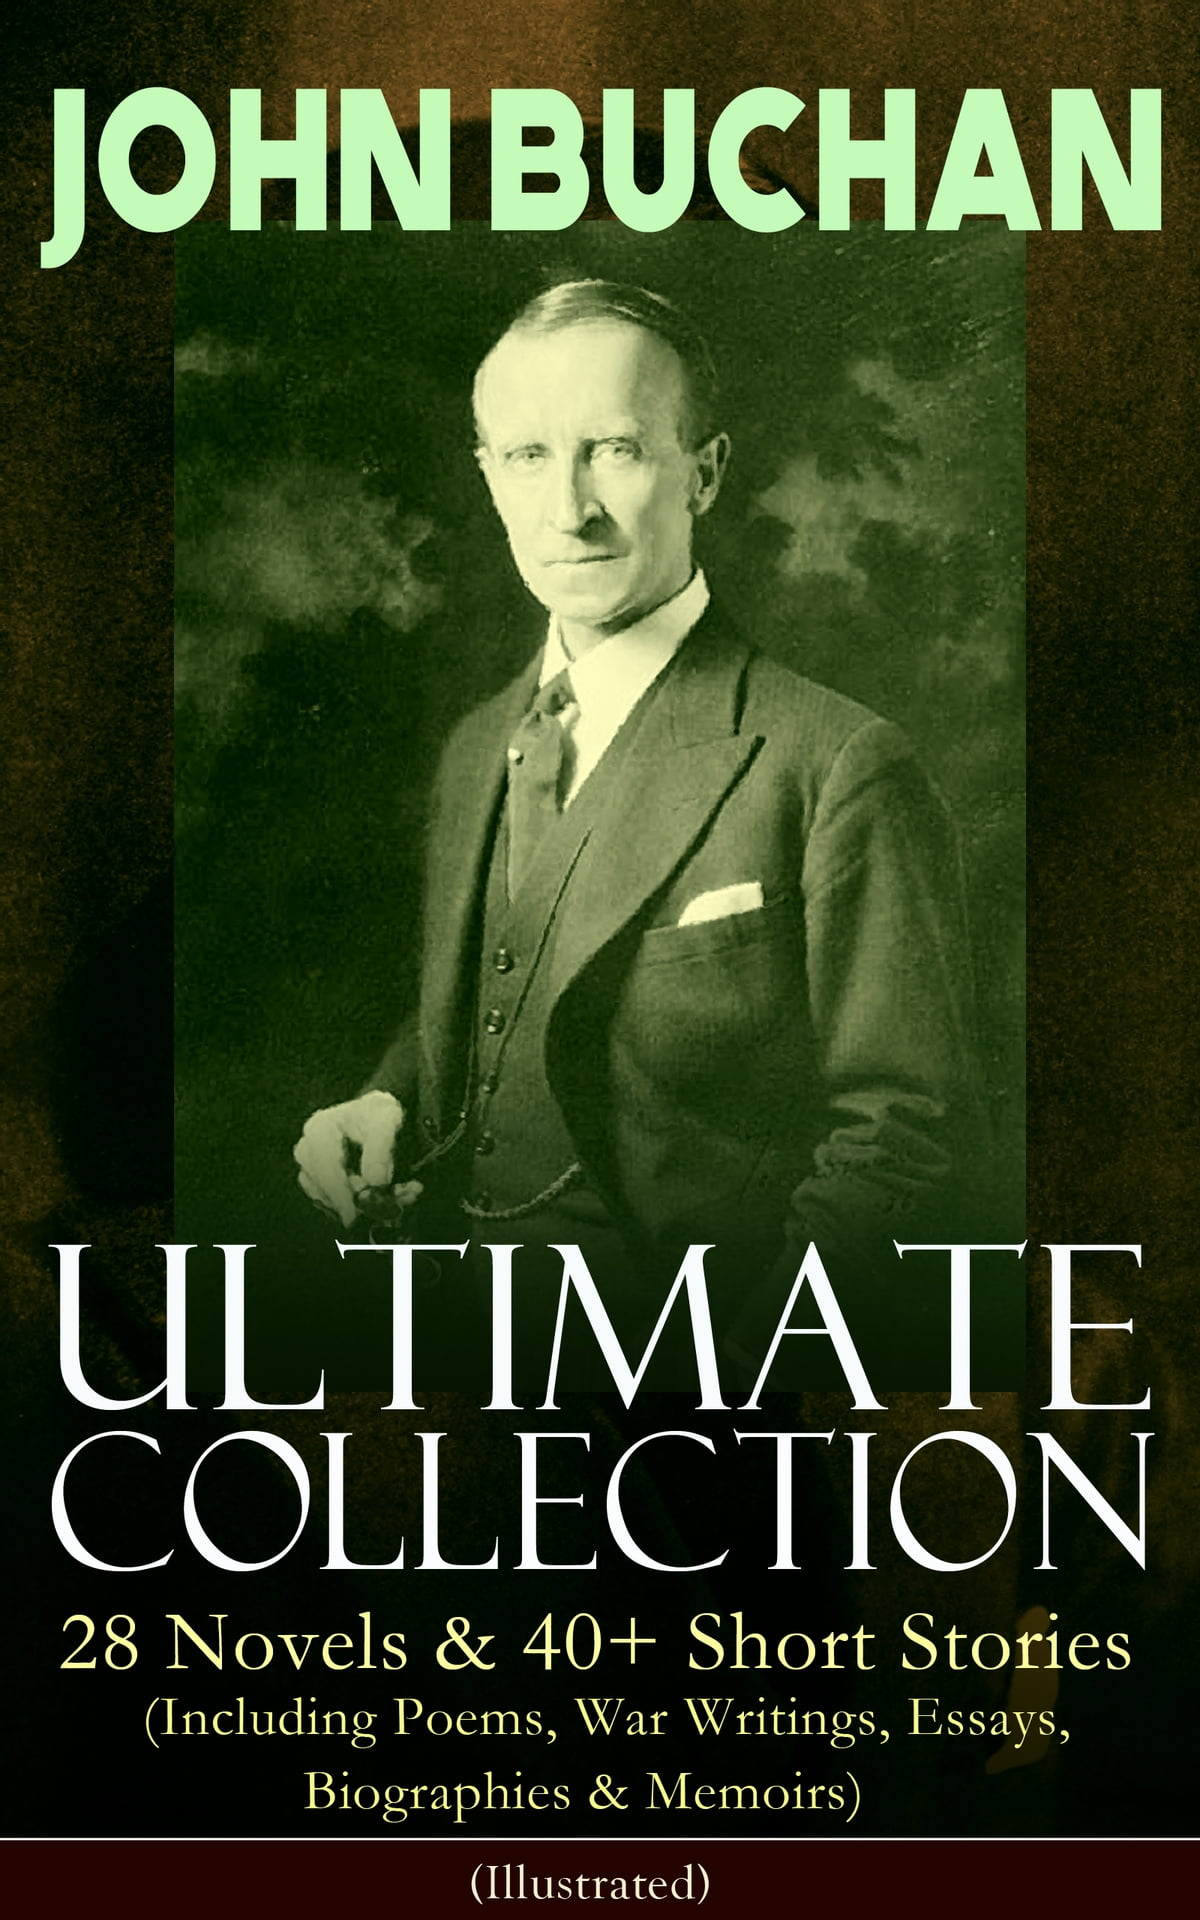 JOHN BUCHAN – Ultimate Collection: 28 Novels & 40+ Short Stories (Including  Poems, War Writings, Essays, Biographies & Memoirs) - Illustrated eBook by  John ...